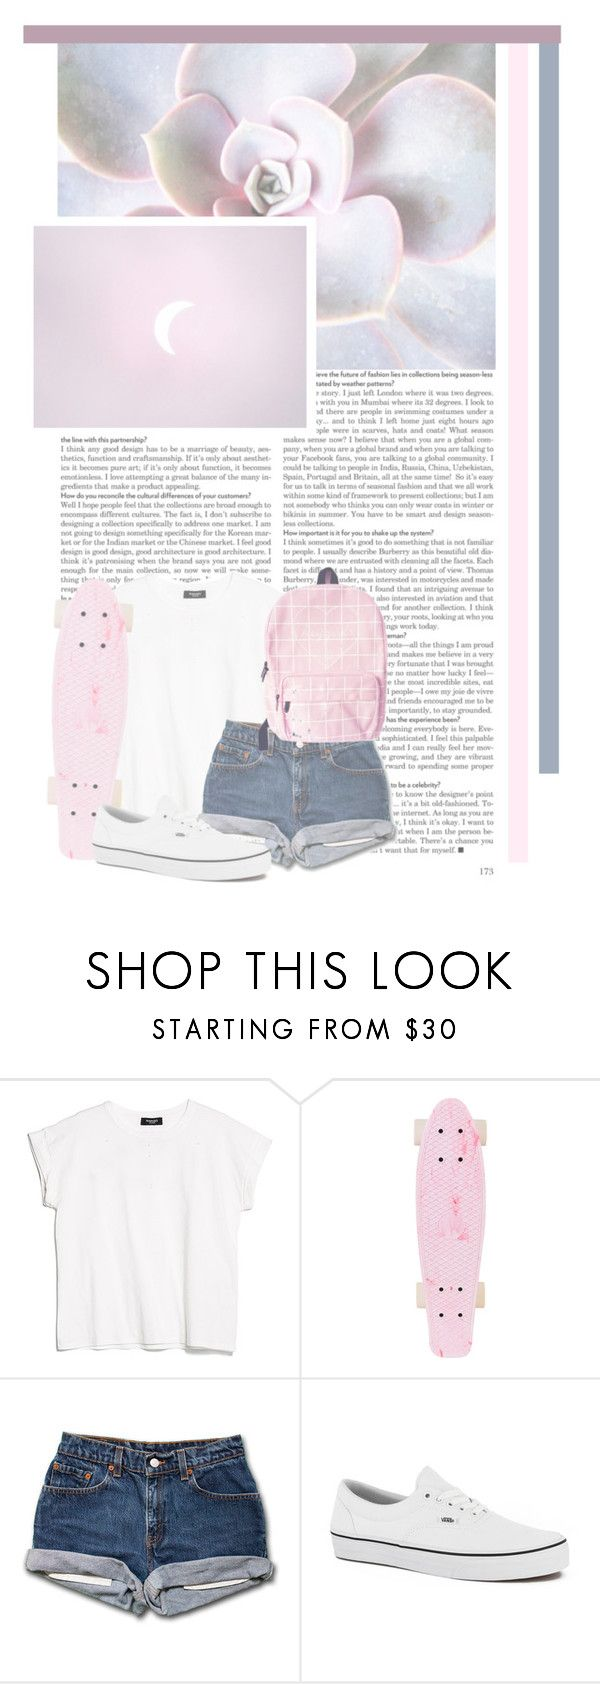 """""""So I'll hope for a miracle."""" by theboy-who-could-fly ❤ liked on Polyvore featuring MANGO and Vans"""